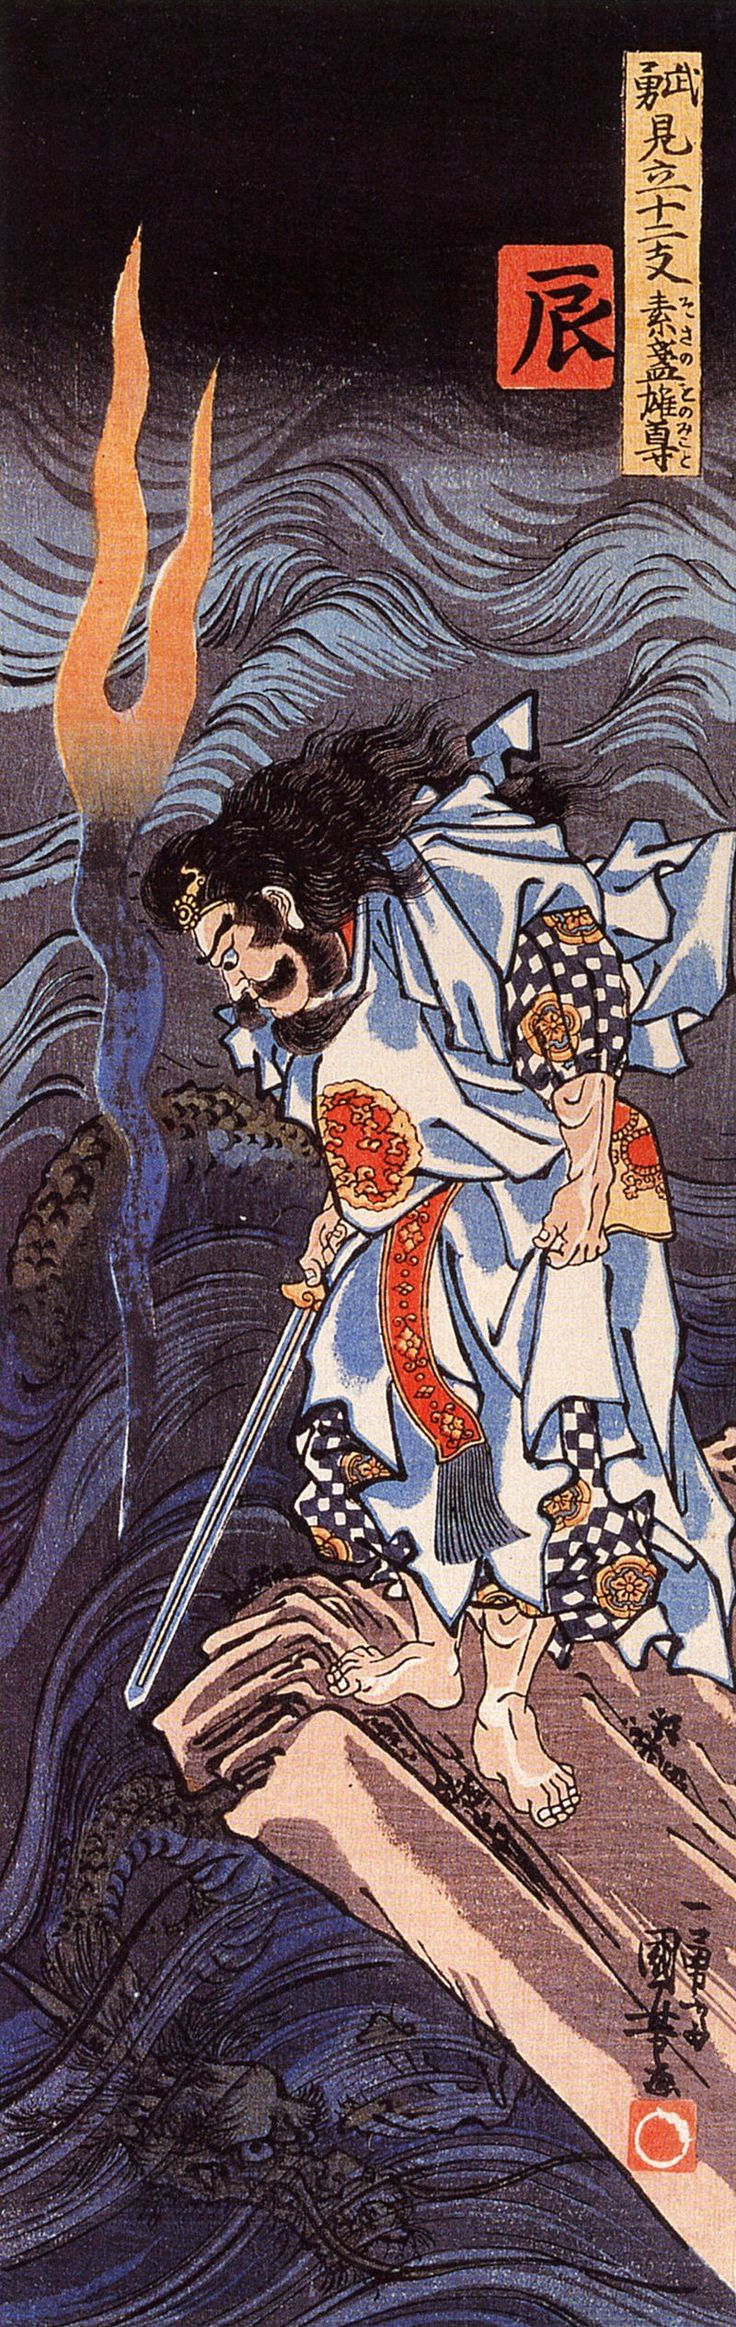 Dragon Susanoo no mikoto and the water dragon - Yamata no Orochi - Wikipedia, the free encyclopedia